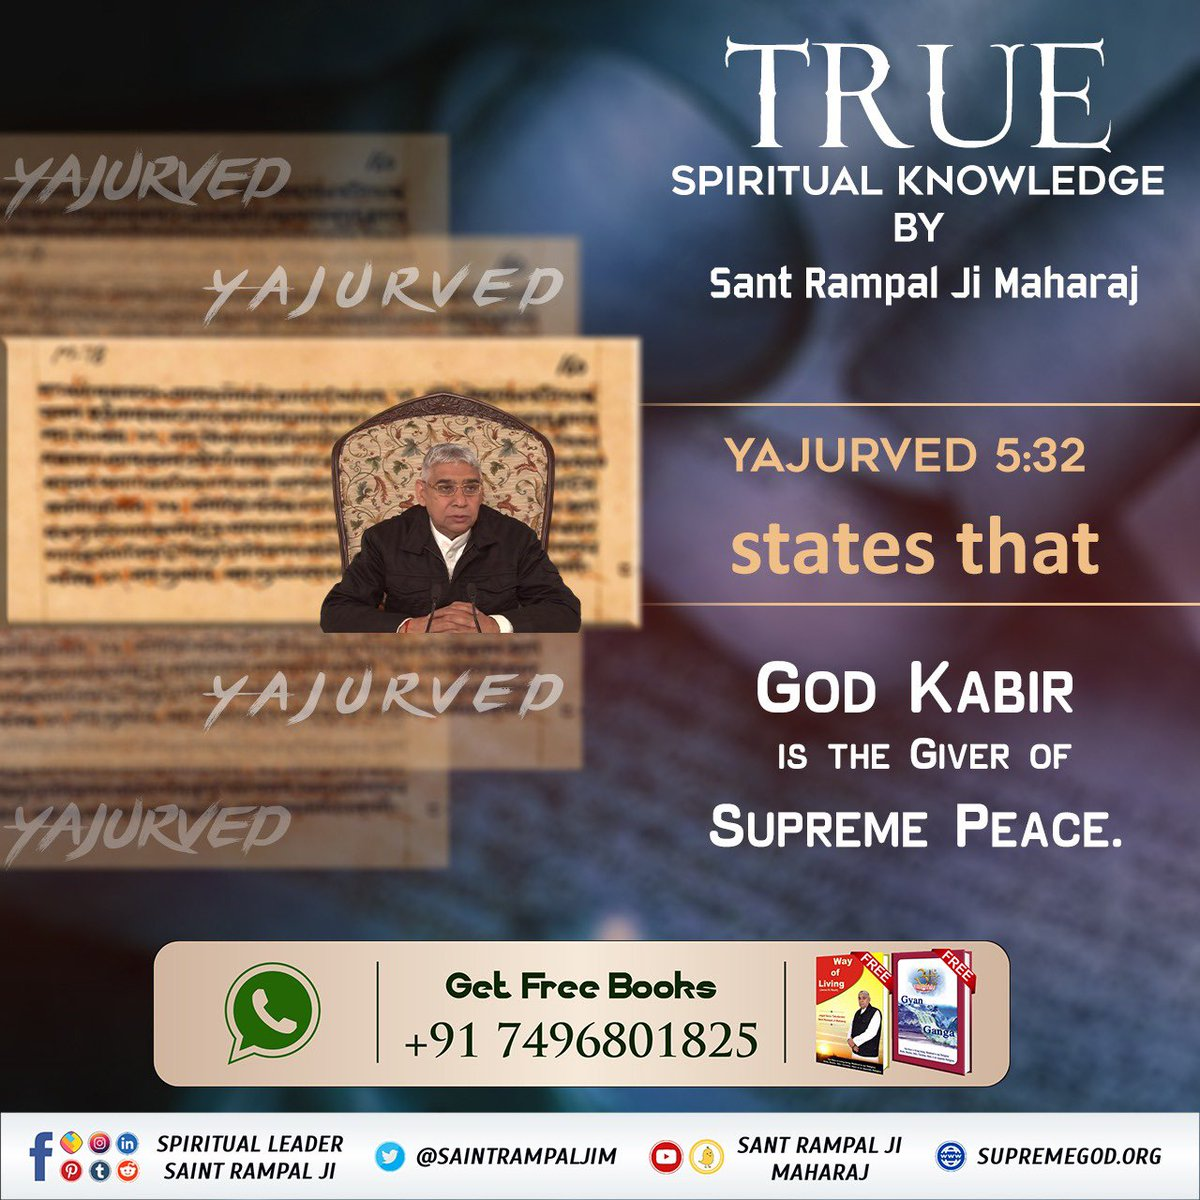 Yajurved 5:32 states that  God Kabir  is the Giver of Supreme Peace.  True spiritual knowledge by Sant Rampal Ji Maharaj  #Wednesdayvibe   #EngineersDay https://t.co/rVse9ds98c